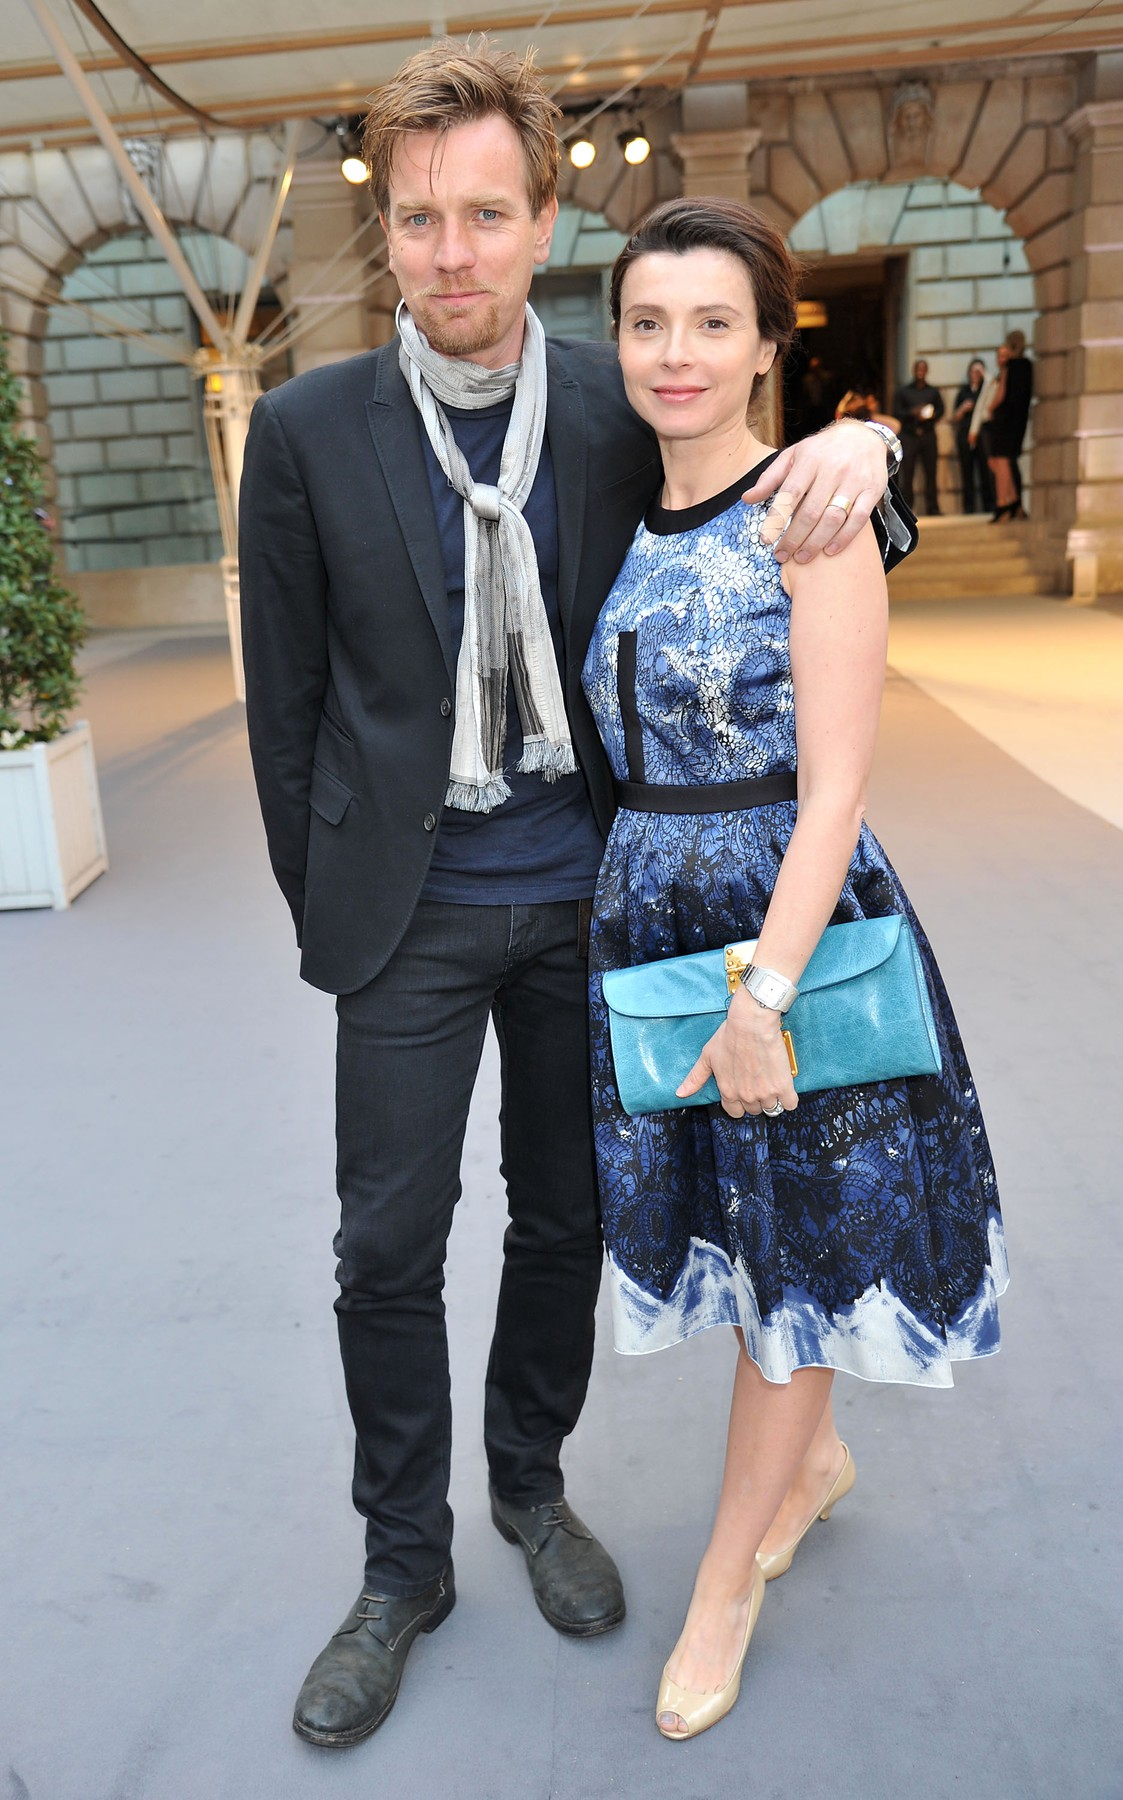 02/06/2011: Royal Academy of Arts Summer Exhibition 2011 Private View at The RAA, Piccadilly. Here, Ewan McGregor with his wife Eve,Image: 94980635, License: Rights-managed, Restrictions: NO UK SALES, Model Release: no, Credit line: Davidson / Goff Photos / Profimedia